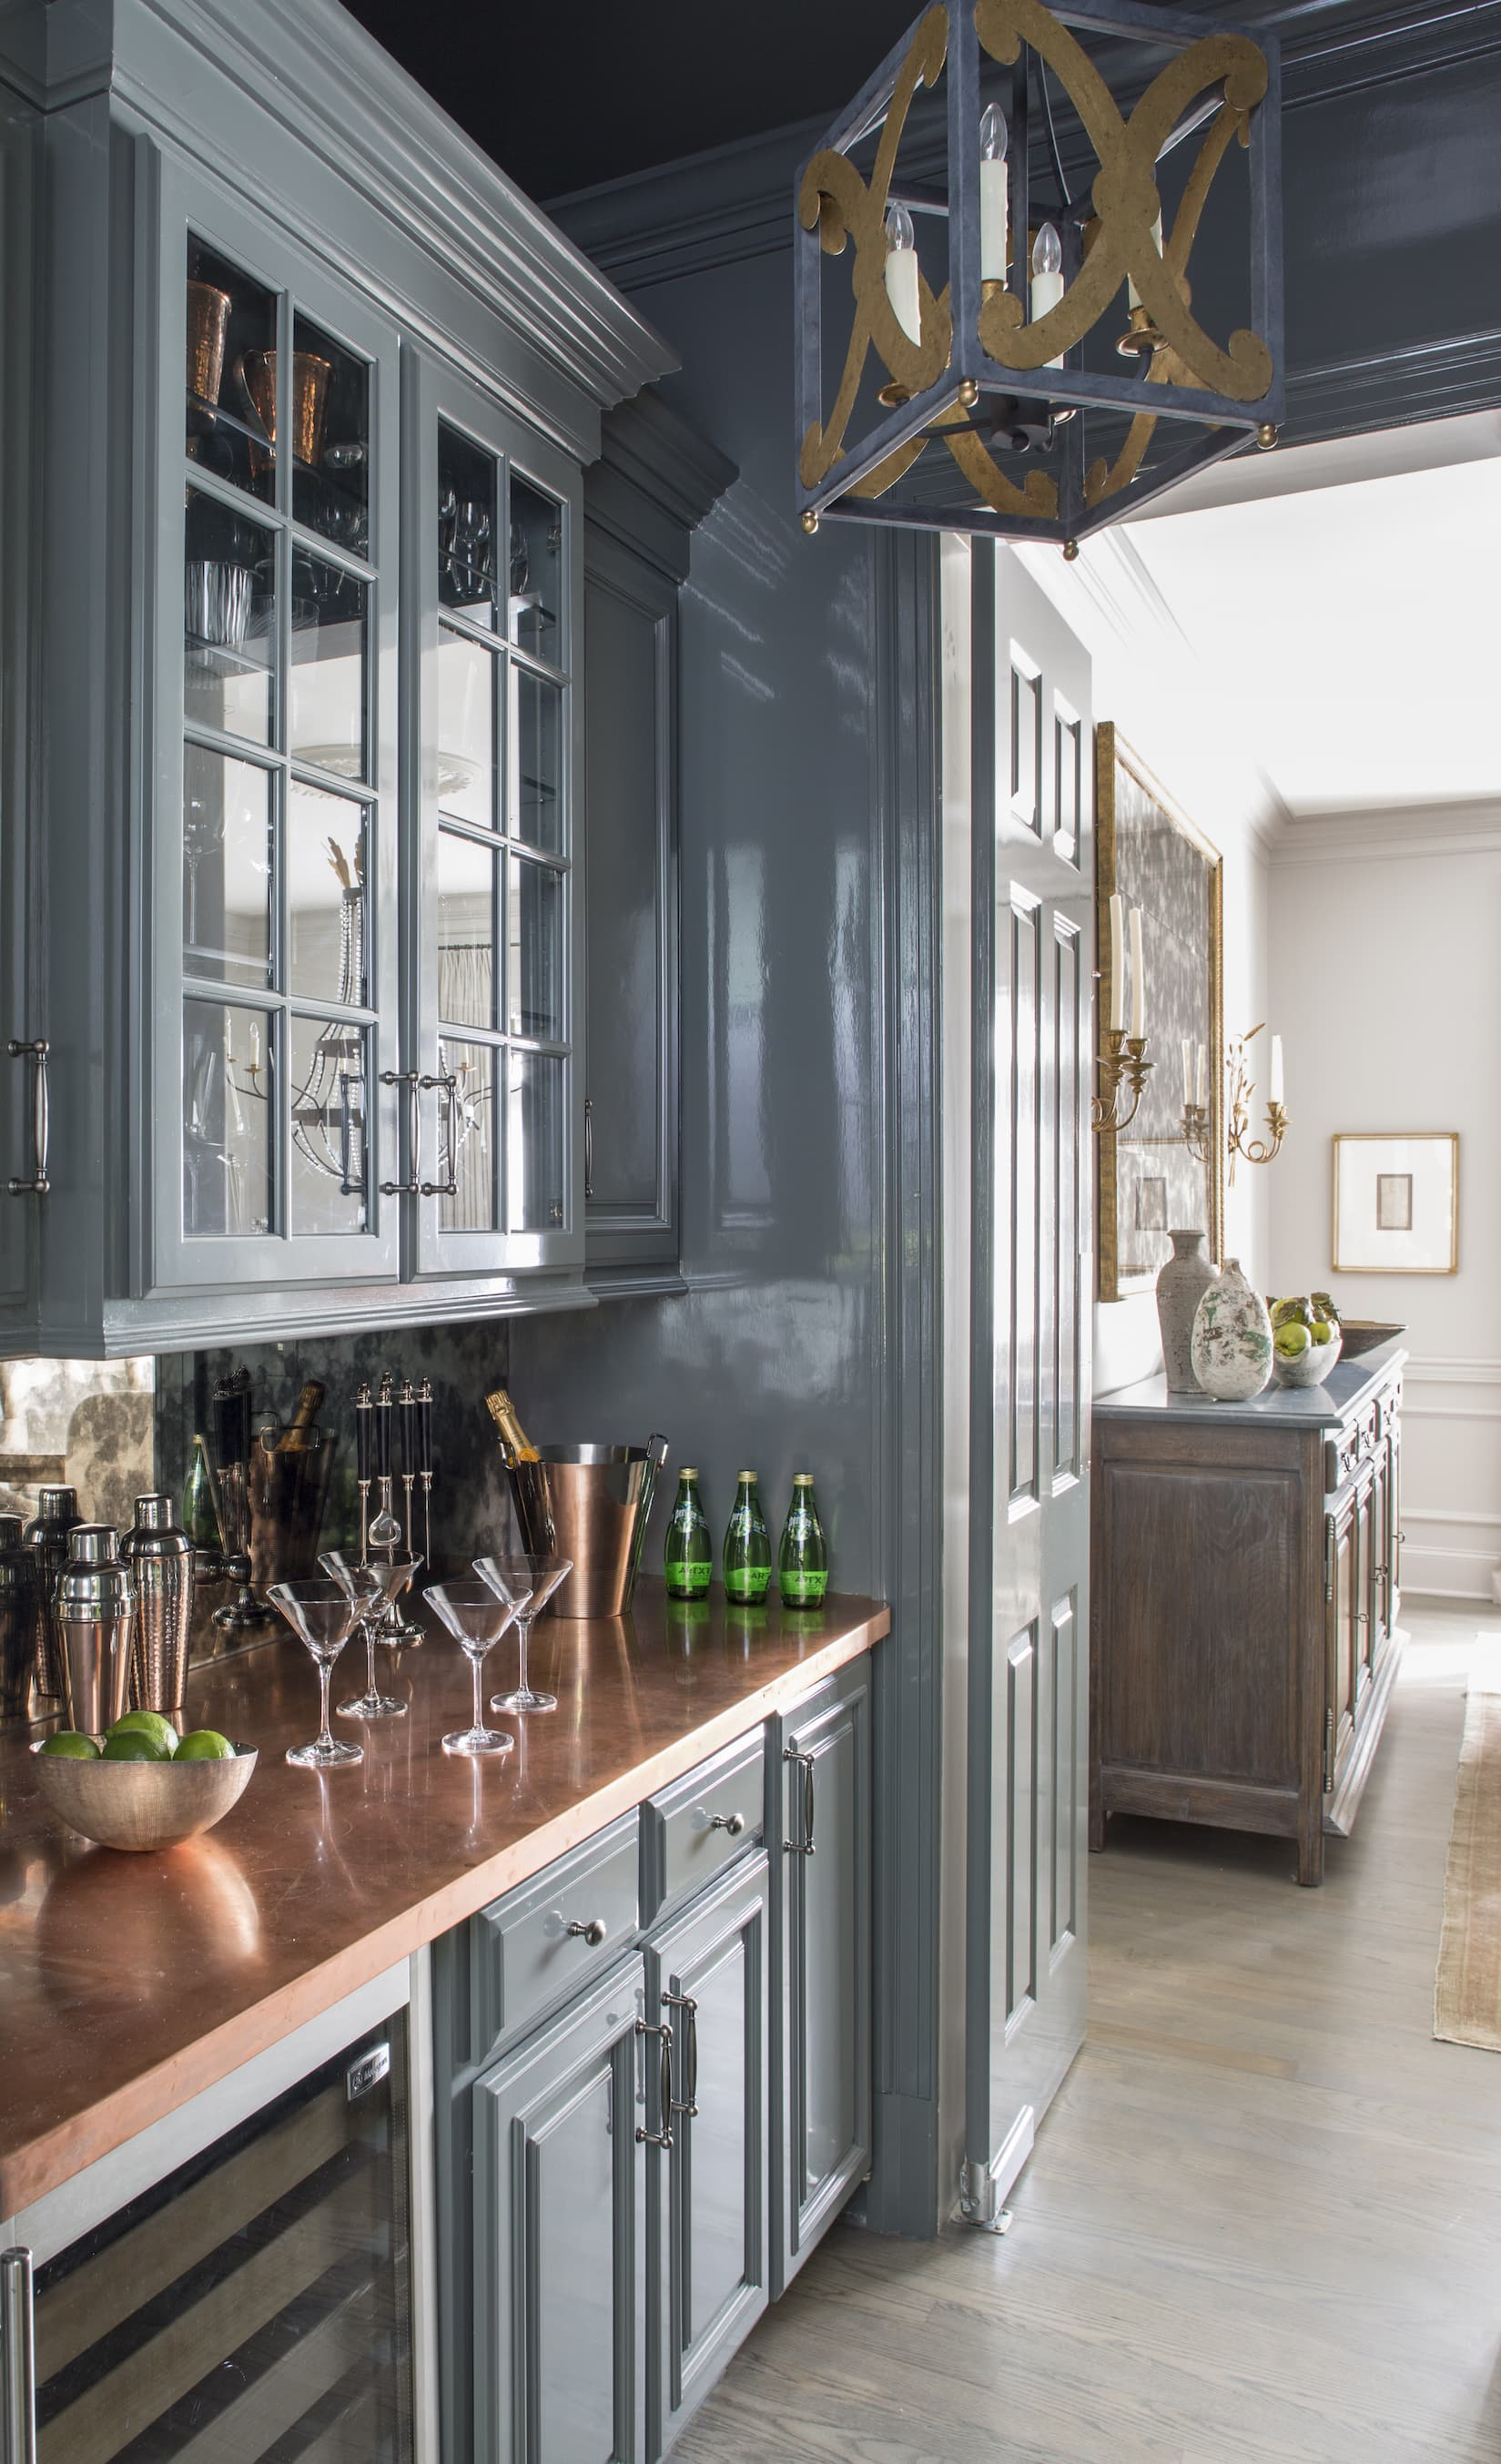 Kitchen with blue-grey cabinetry and copper countertops.